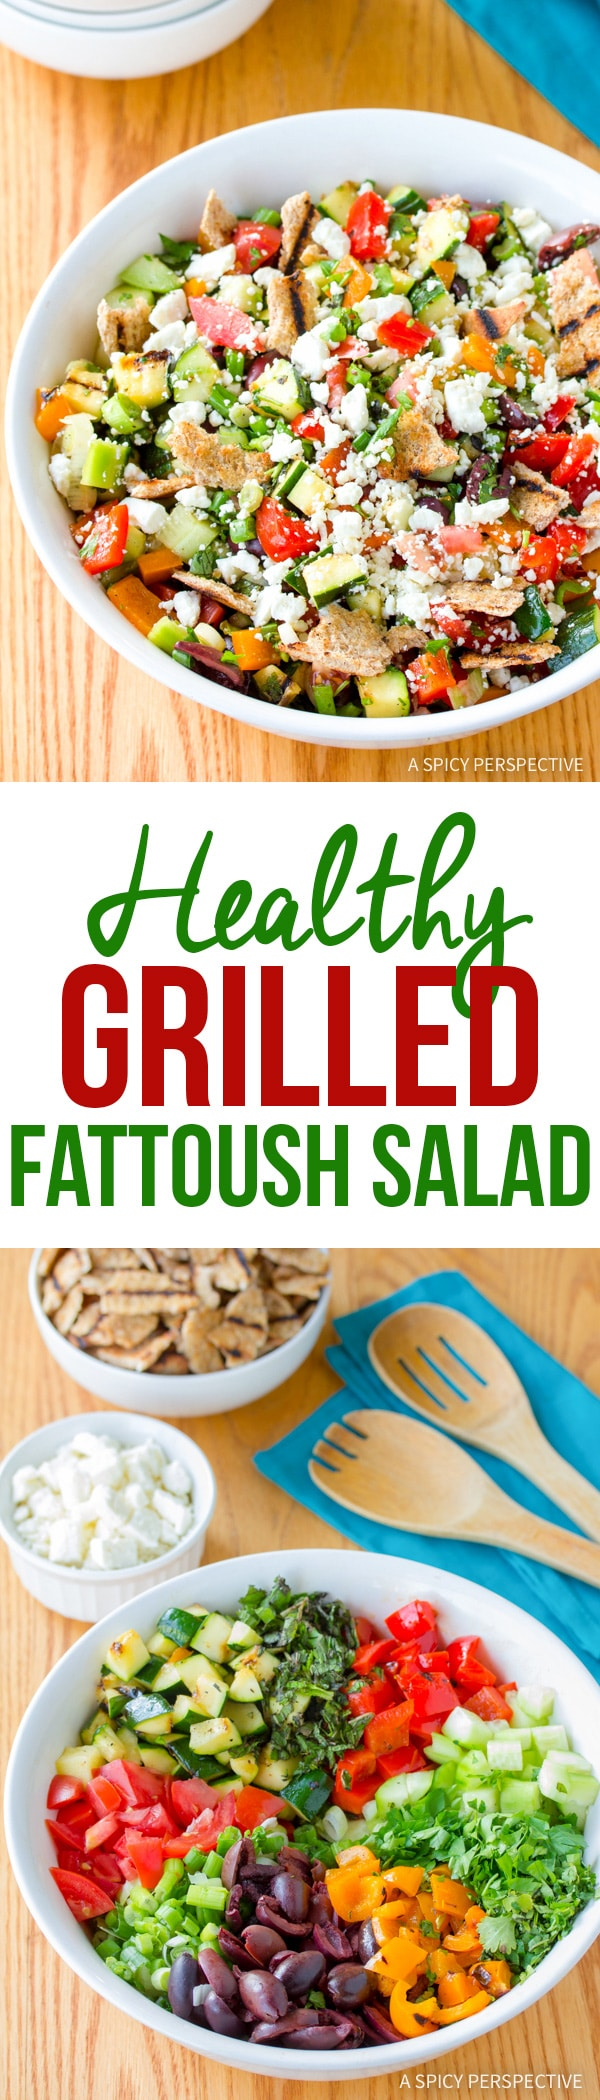 Best Grilled Fattoush Salad Recipe #healthy #summer